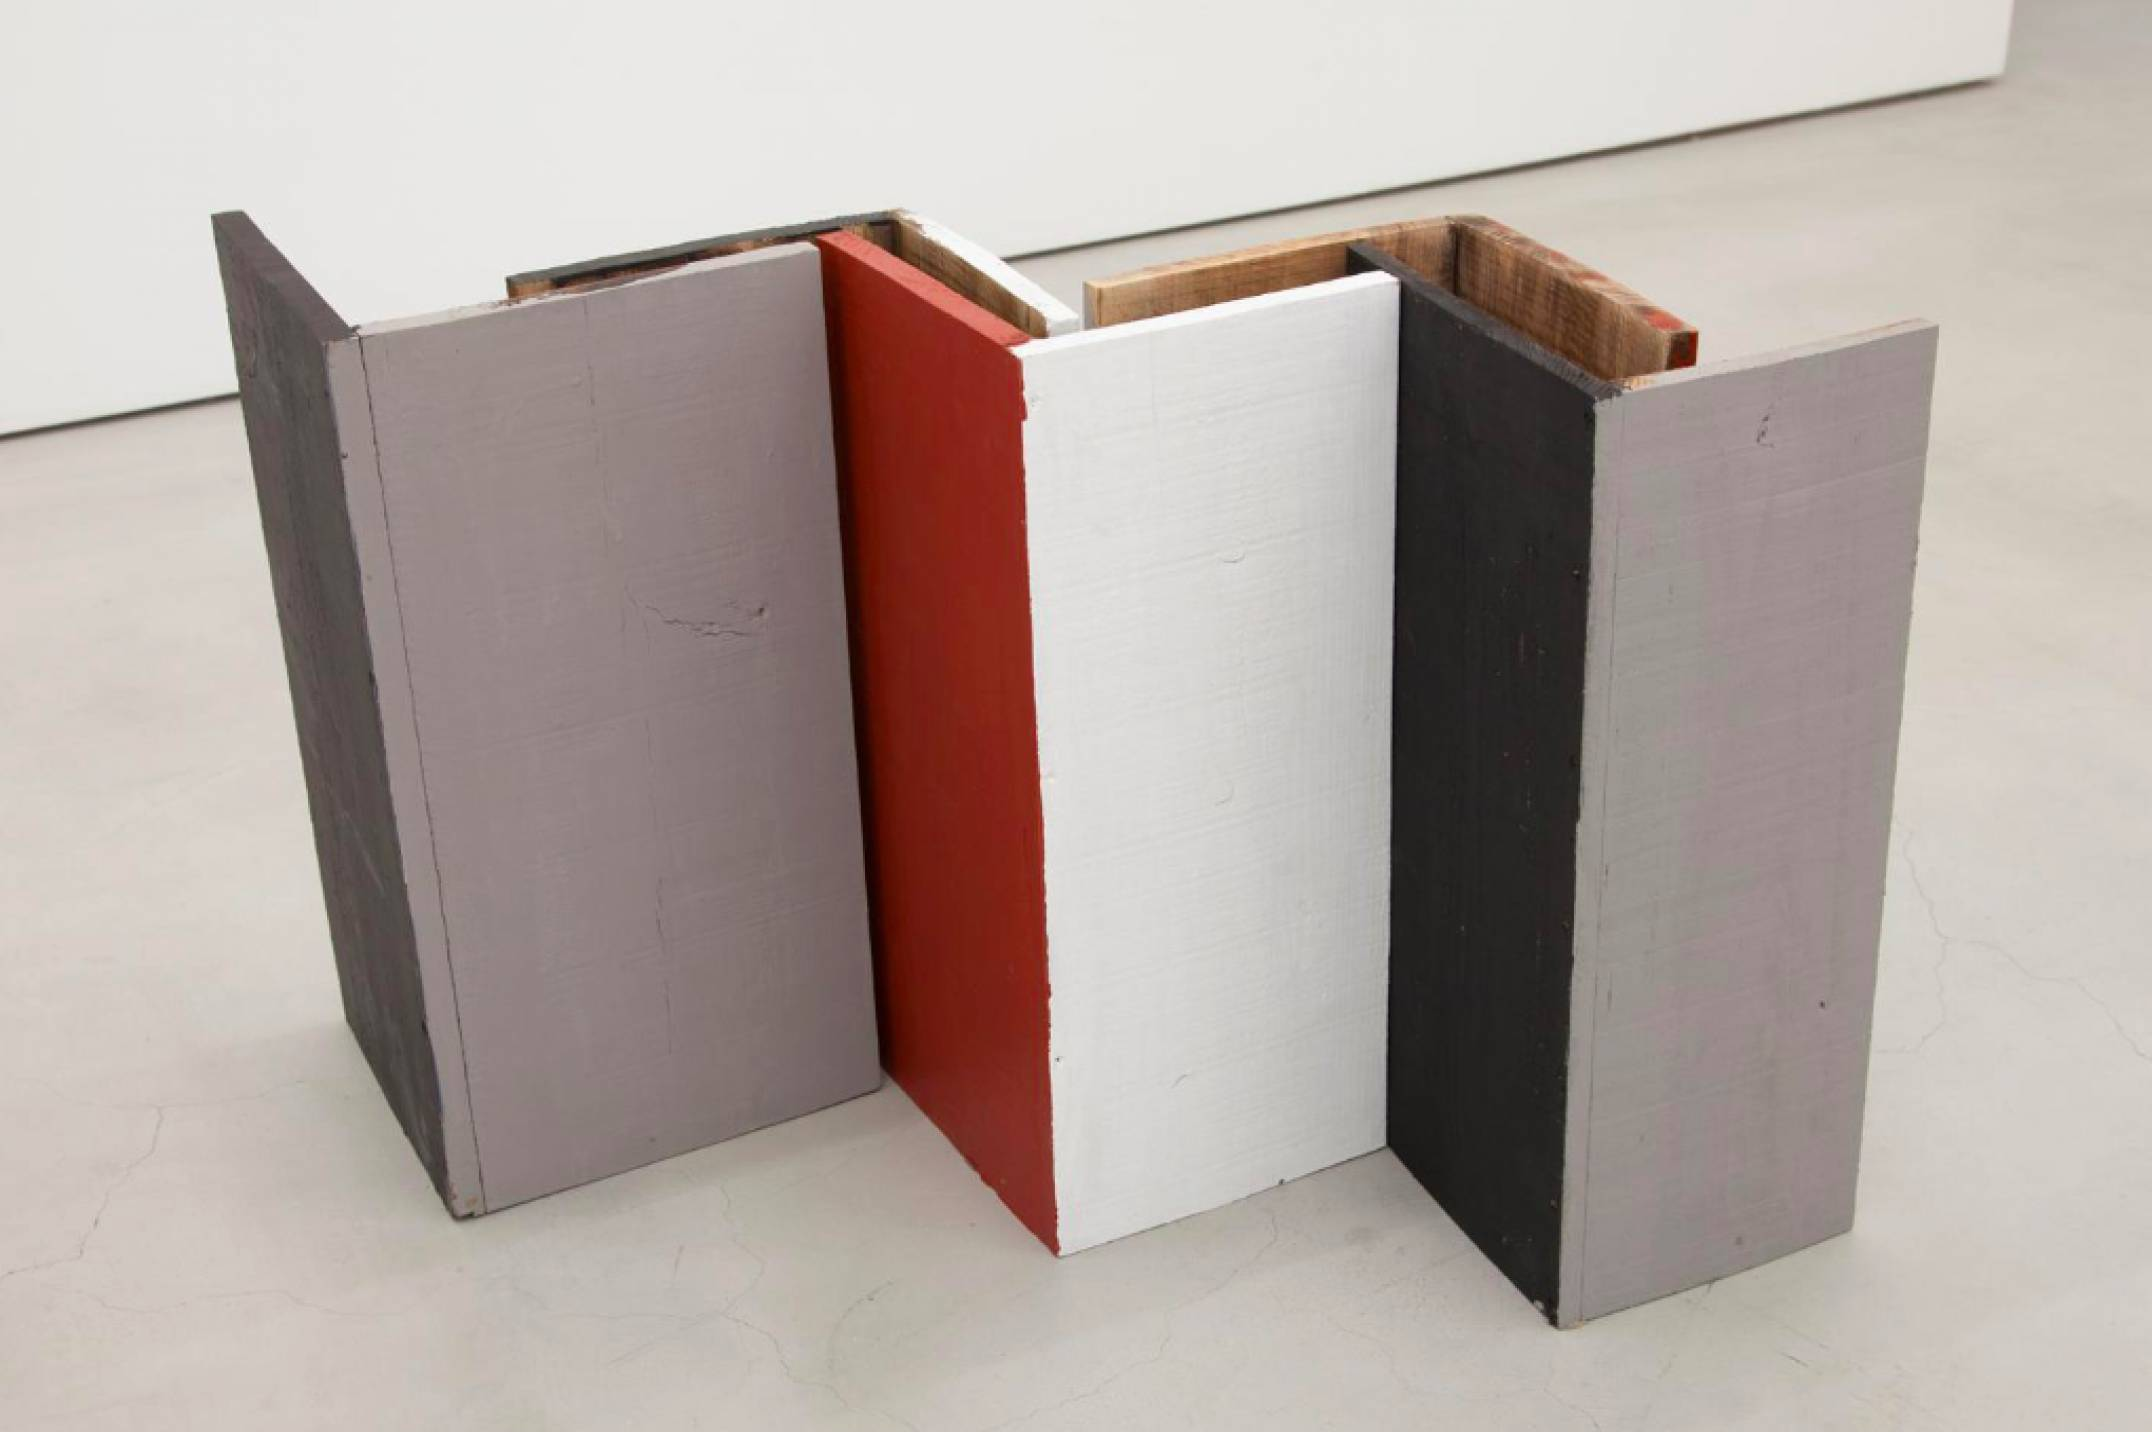 Kishio Suga, <em>Standing Perimeter, Occupied Center</em>, 1986, plywood, water-based paint, variable dimensions - Mendes Wood DM